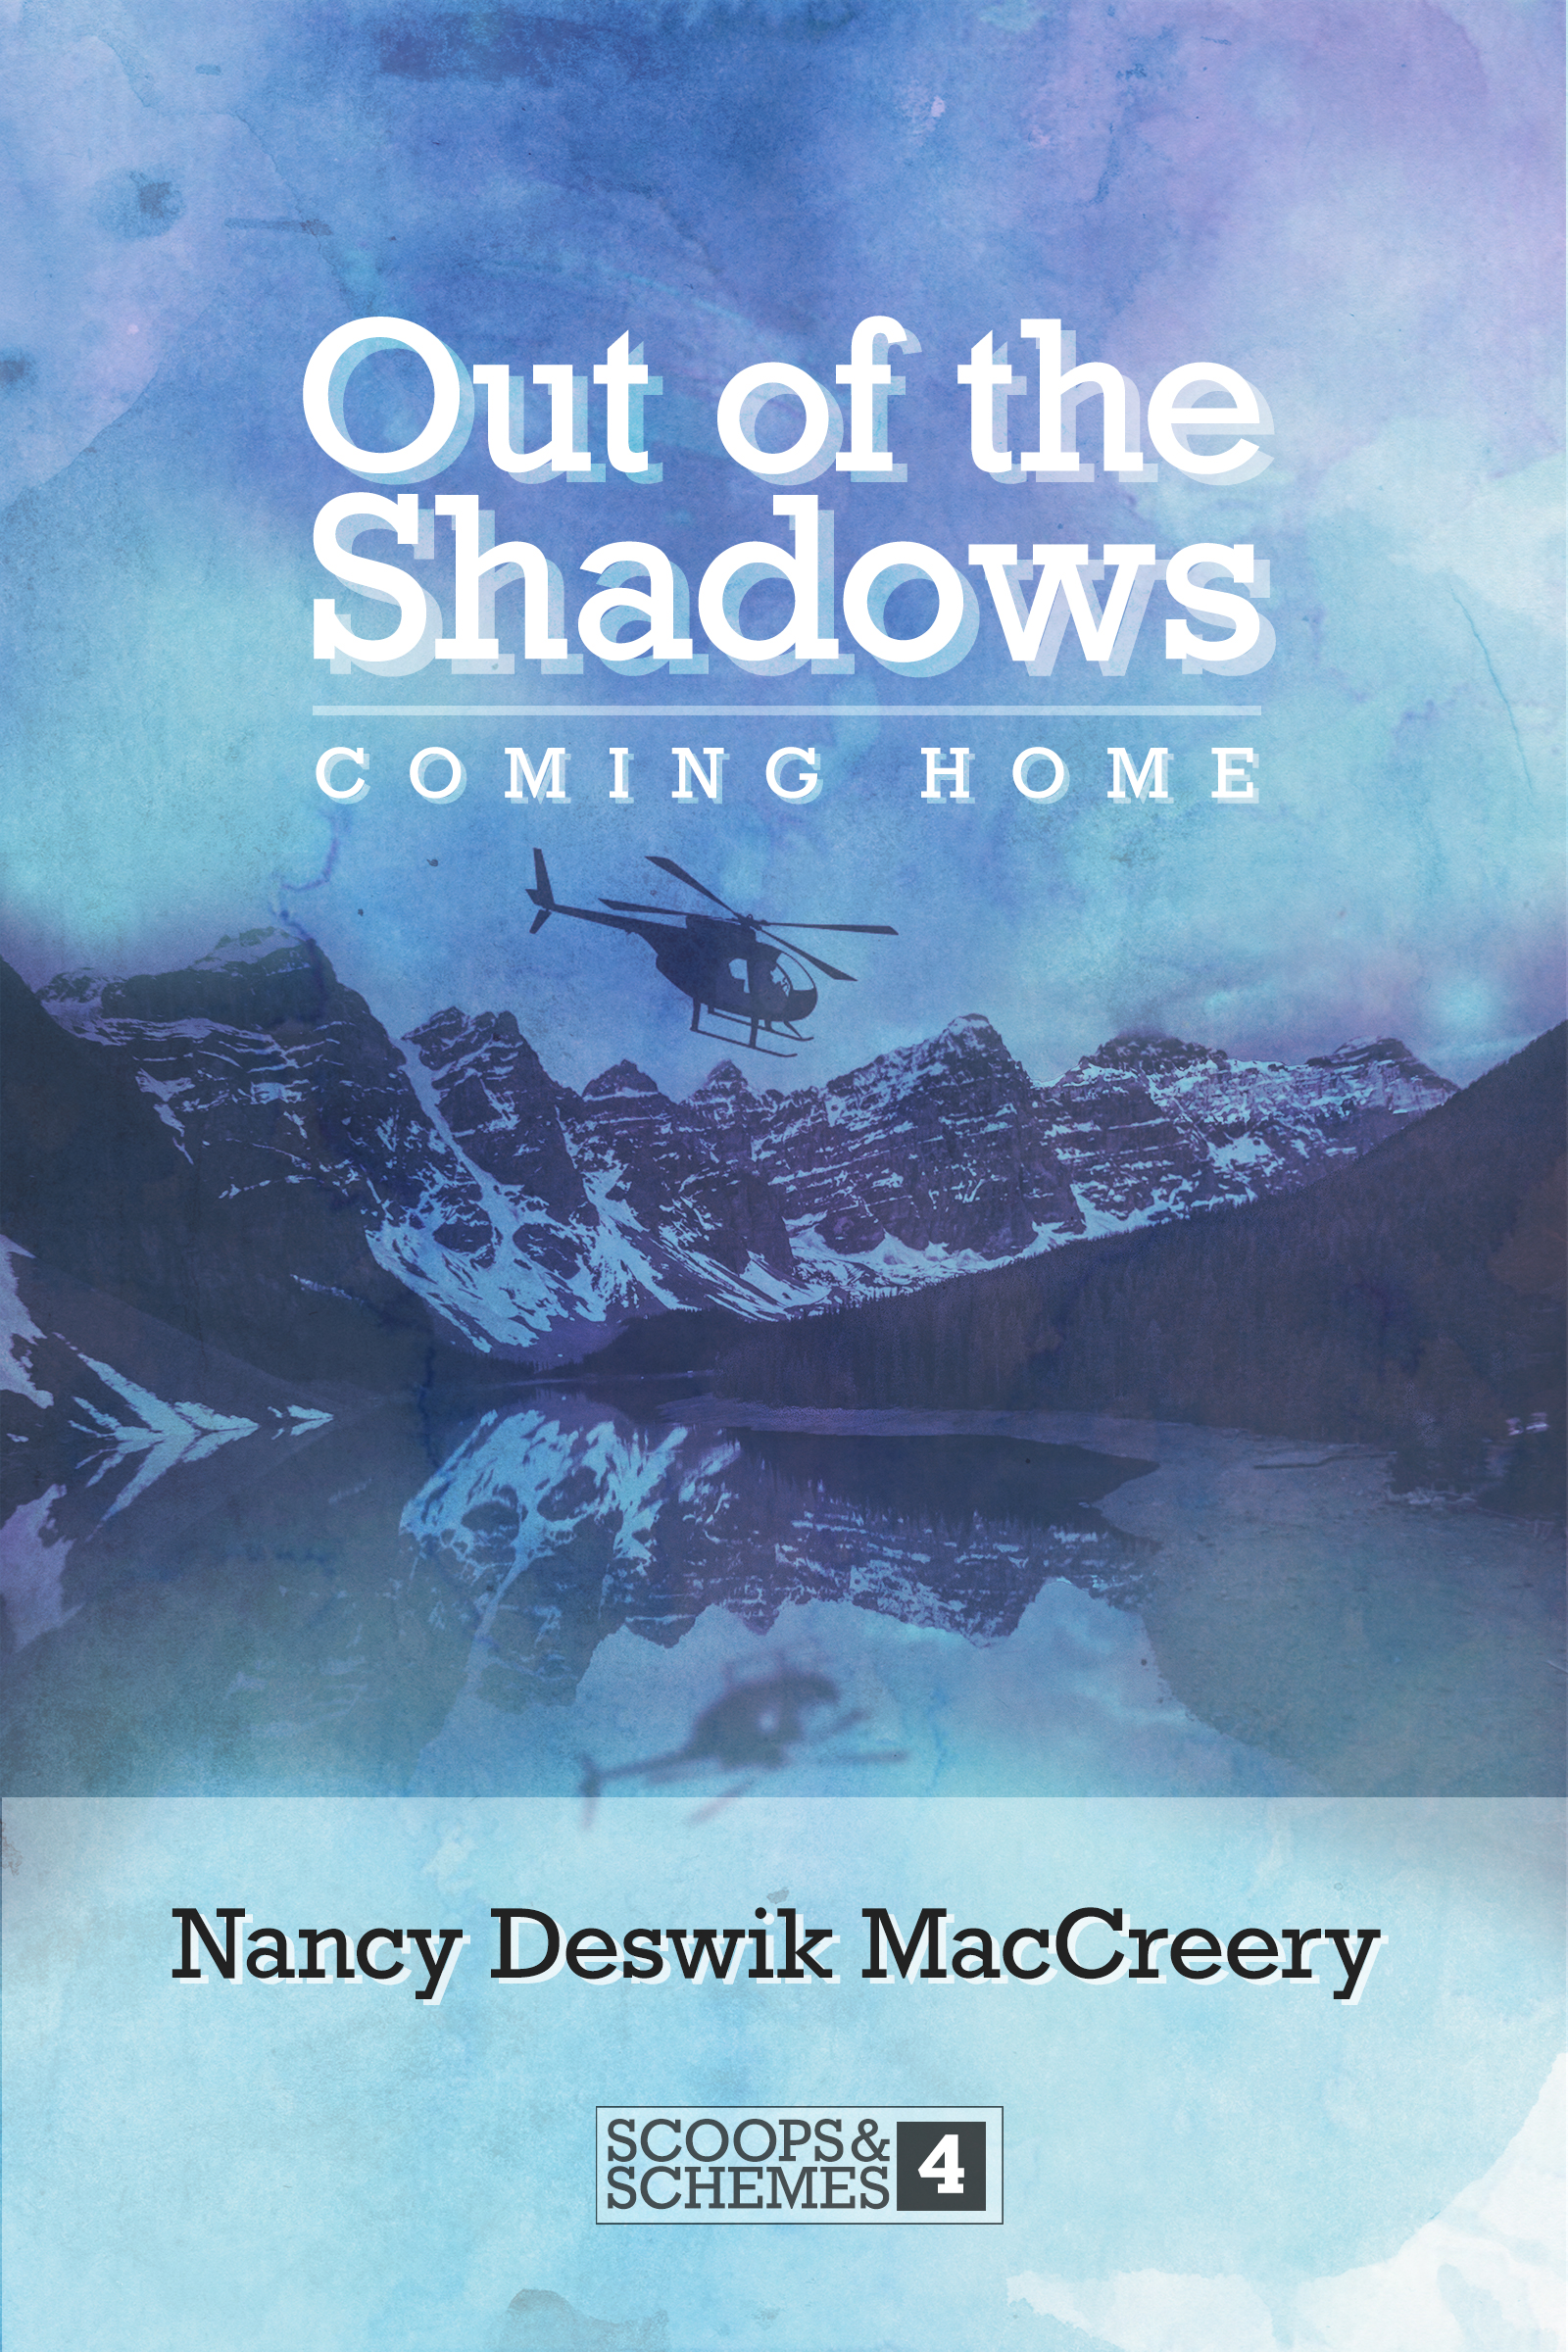 nmc-shadows-frontcover-blue_v3.jpg